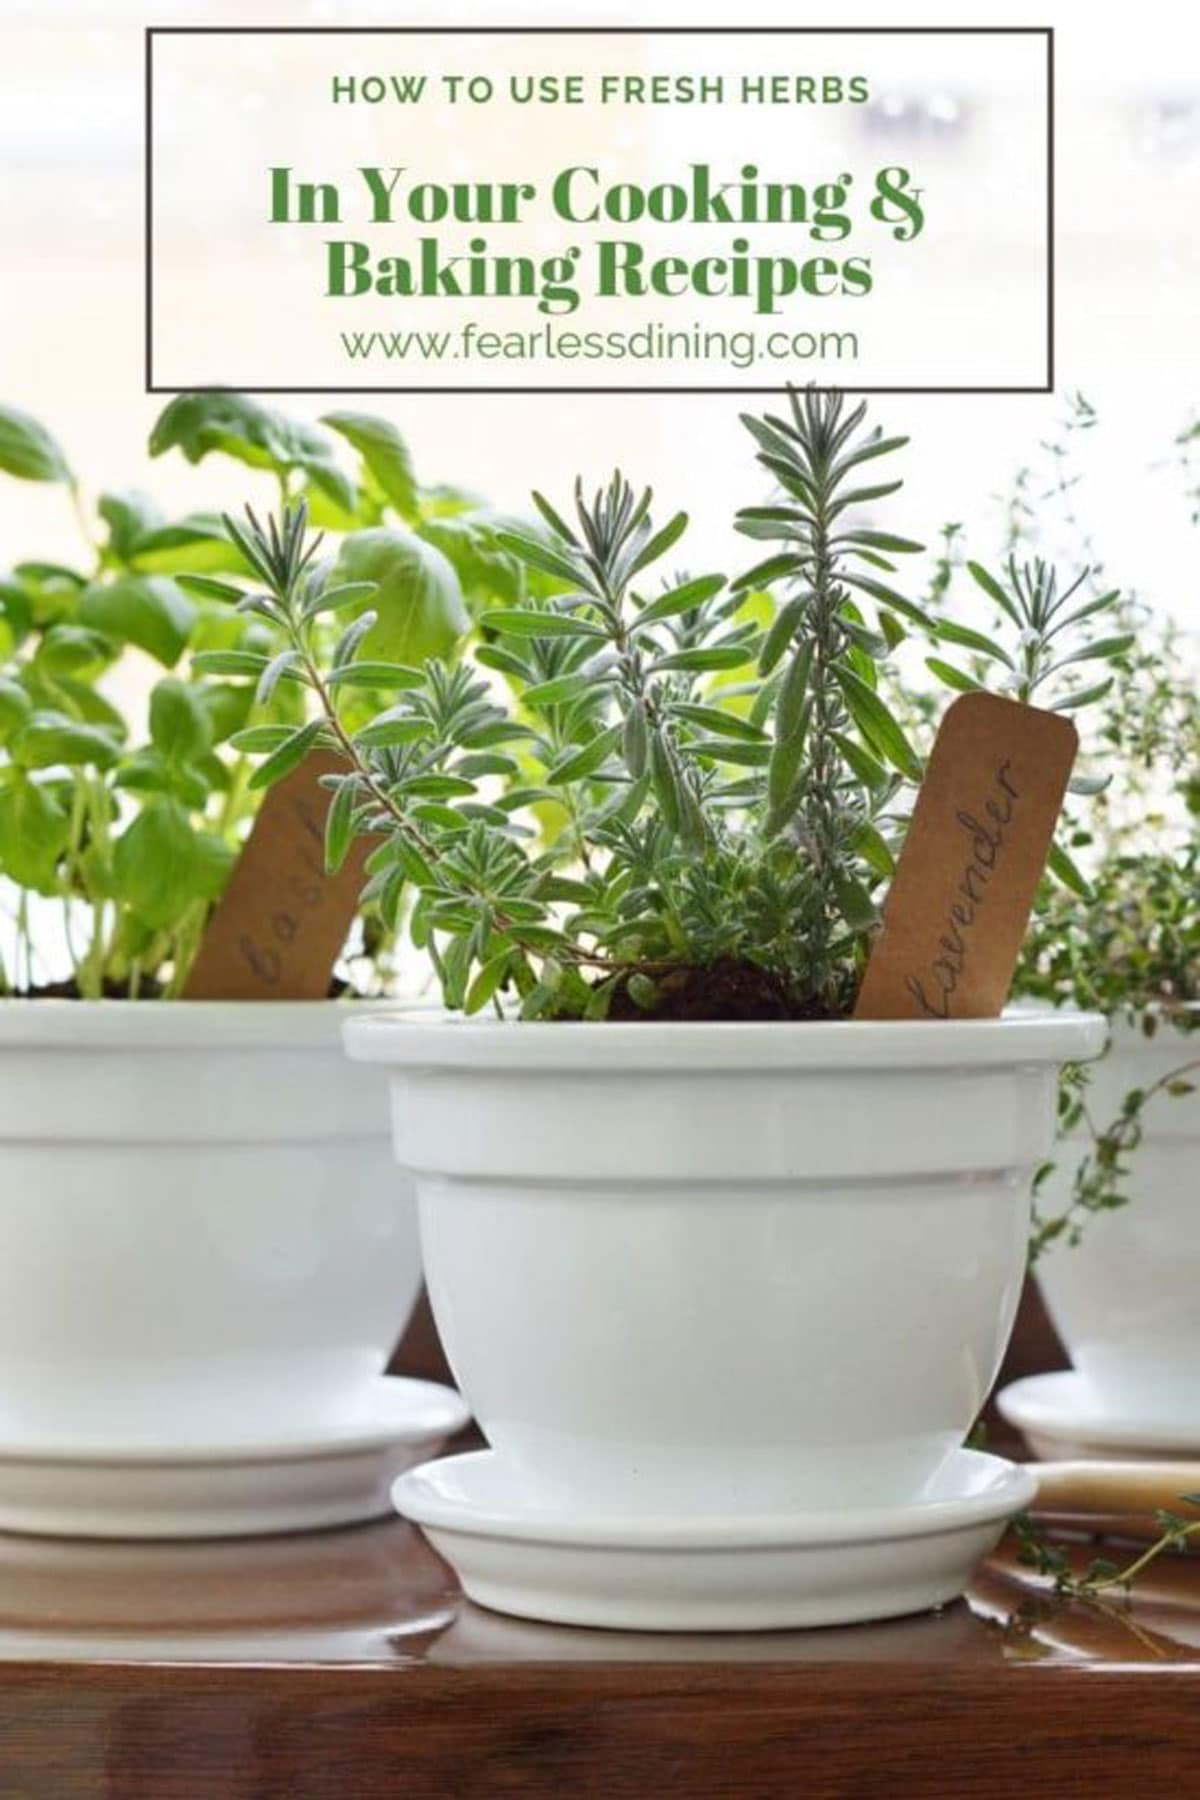 white flower pots with fresh herbs growing in them